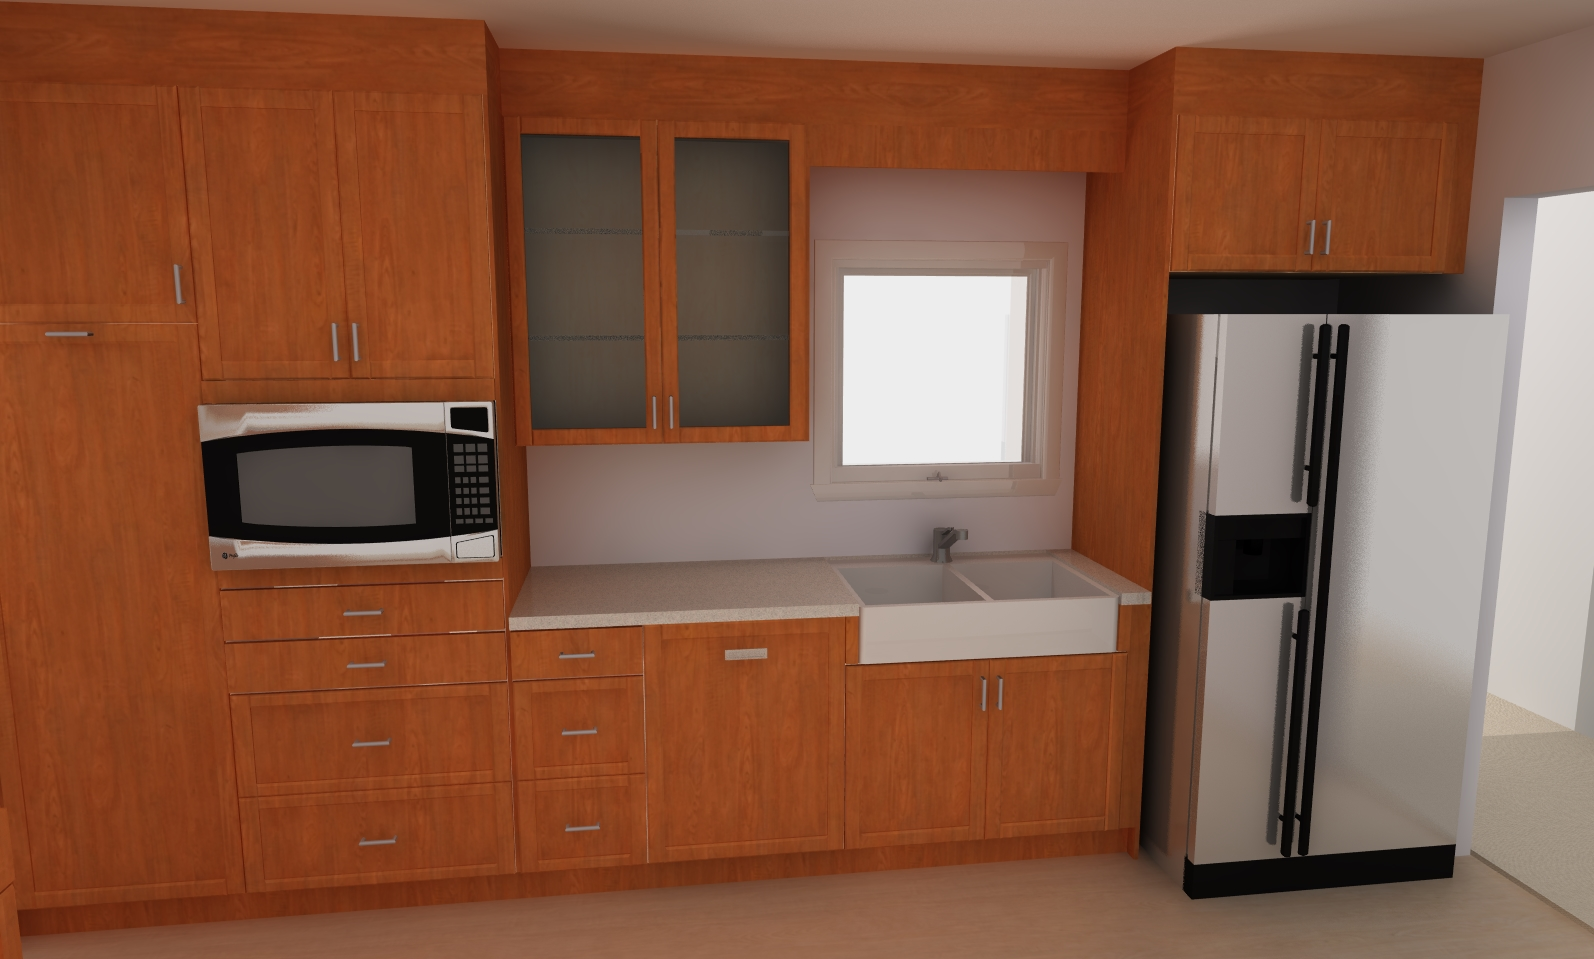 Adel doors for a contemporary ikea kitchen design for Who makes ikea microwaves